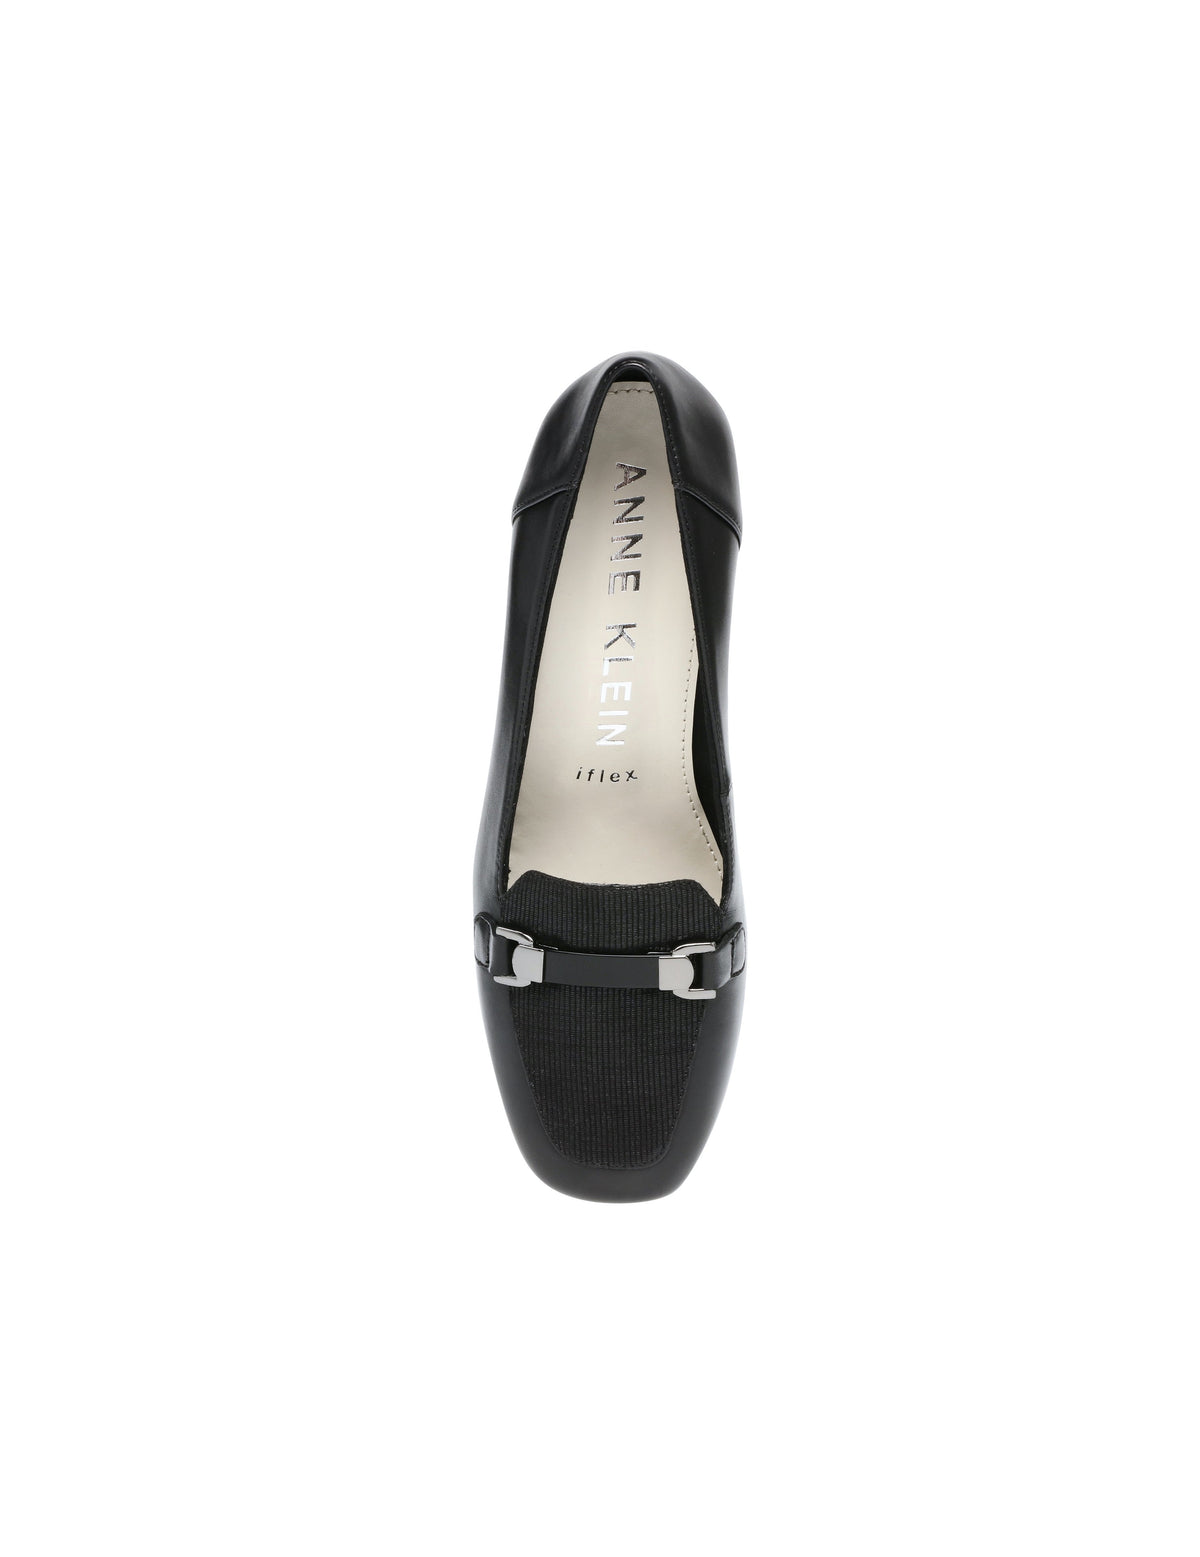 Anne Klein Evera Heels Black Leather Pumps